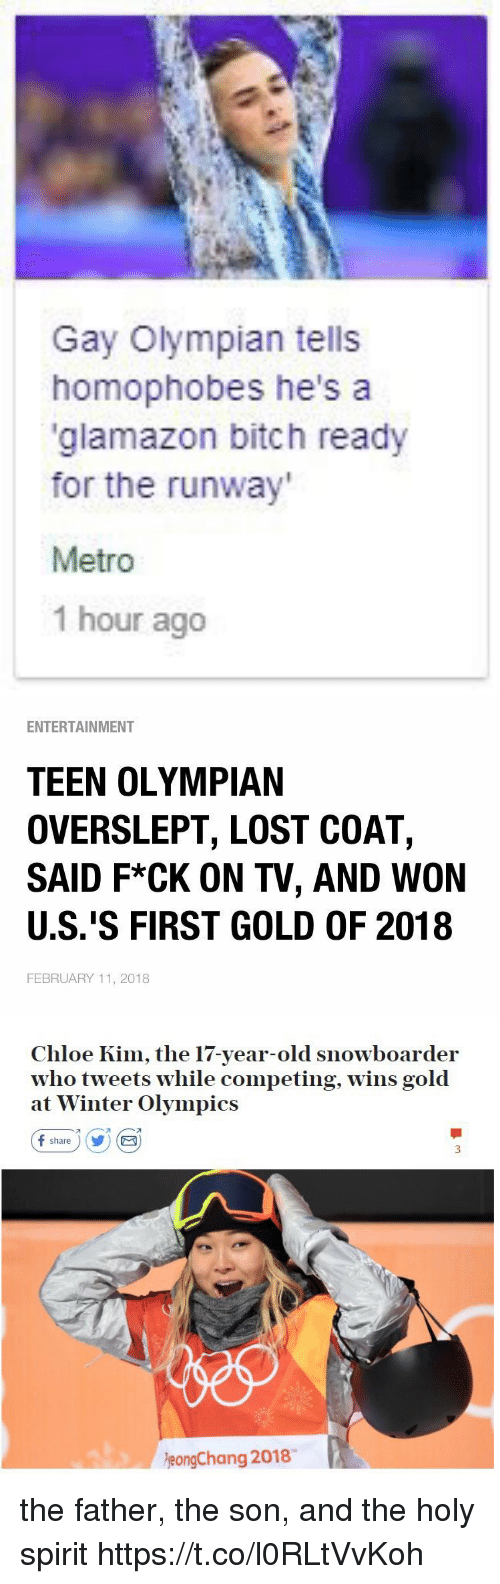 Bitch, Winter, and Lost: Gay Olympian tells  homophobes he's a  glamazon bitch ready  for the runway  Metro  1 hour ago   ENTERTAINMENT  TEEN OLYMPIAN  OVERSLEPT, LOST COAT,  SAID F*CK ON TV, AND WON  U.S.'S FIRST GOLD OF 2018  FEBRUARY 11, 2018   Chloe Kim, the 17-year-old snowboarder  who tweets while competing, wins gold  at Winter Olympics  f share ) (y) (  eongChang 2018 the father, the son, and the holy spirit https://t.co/l0RLtVvKoh